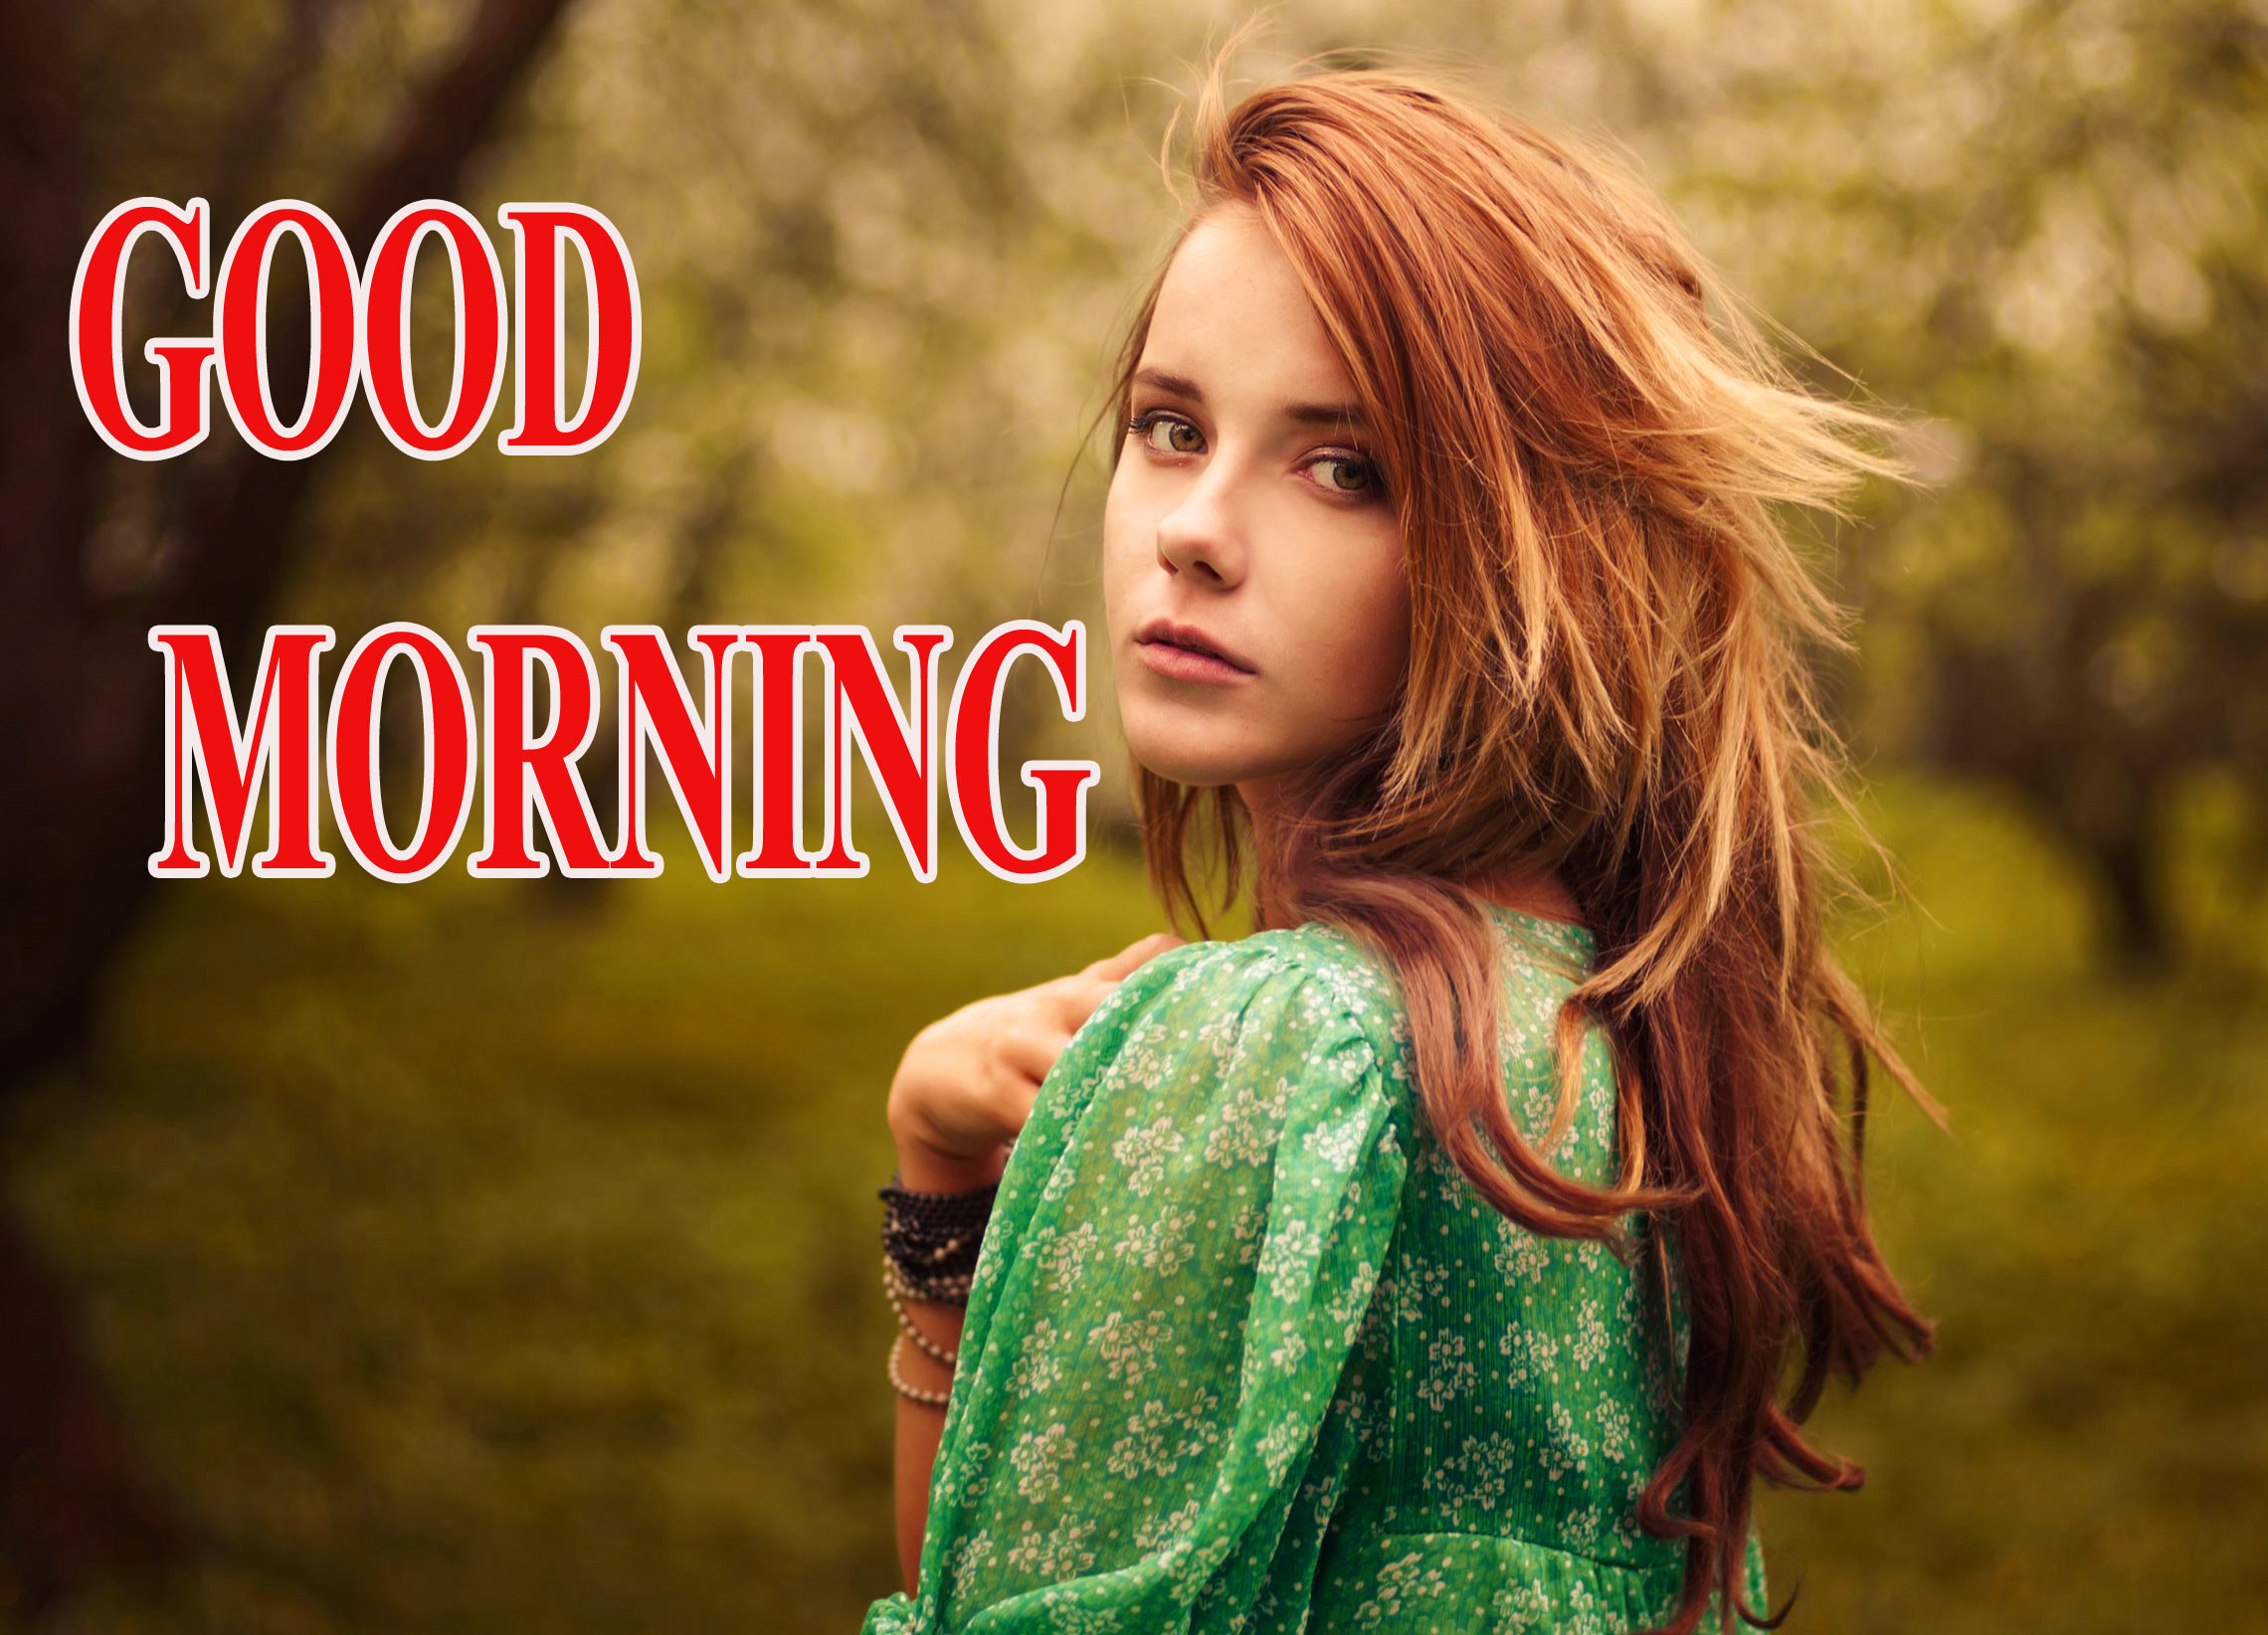 BEAUTIFUL LATEST AMAZING ALL GOOD MORNING IMAGES PHOTO PICS DOWNLOAD